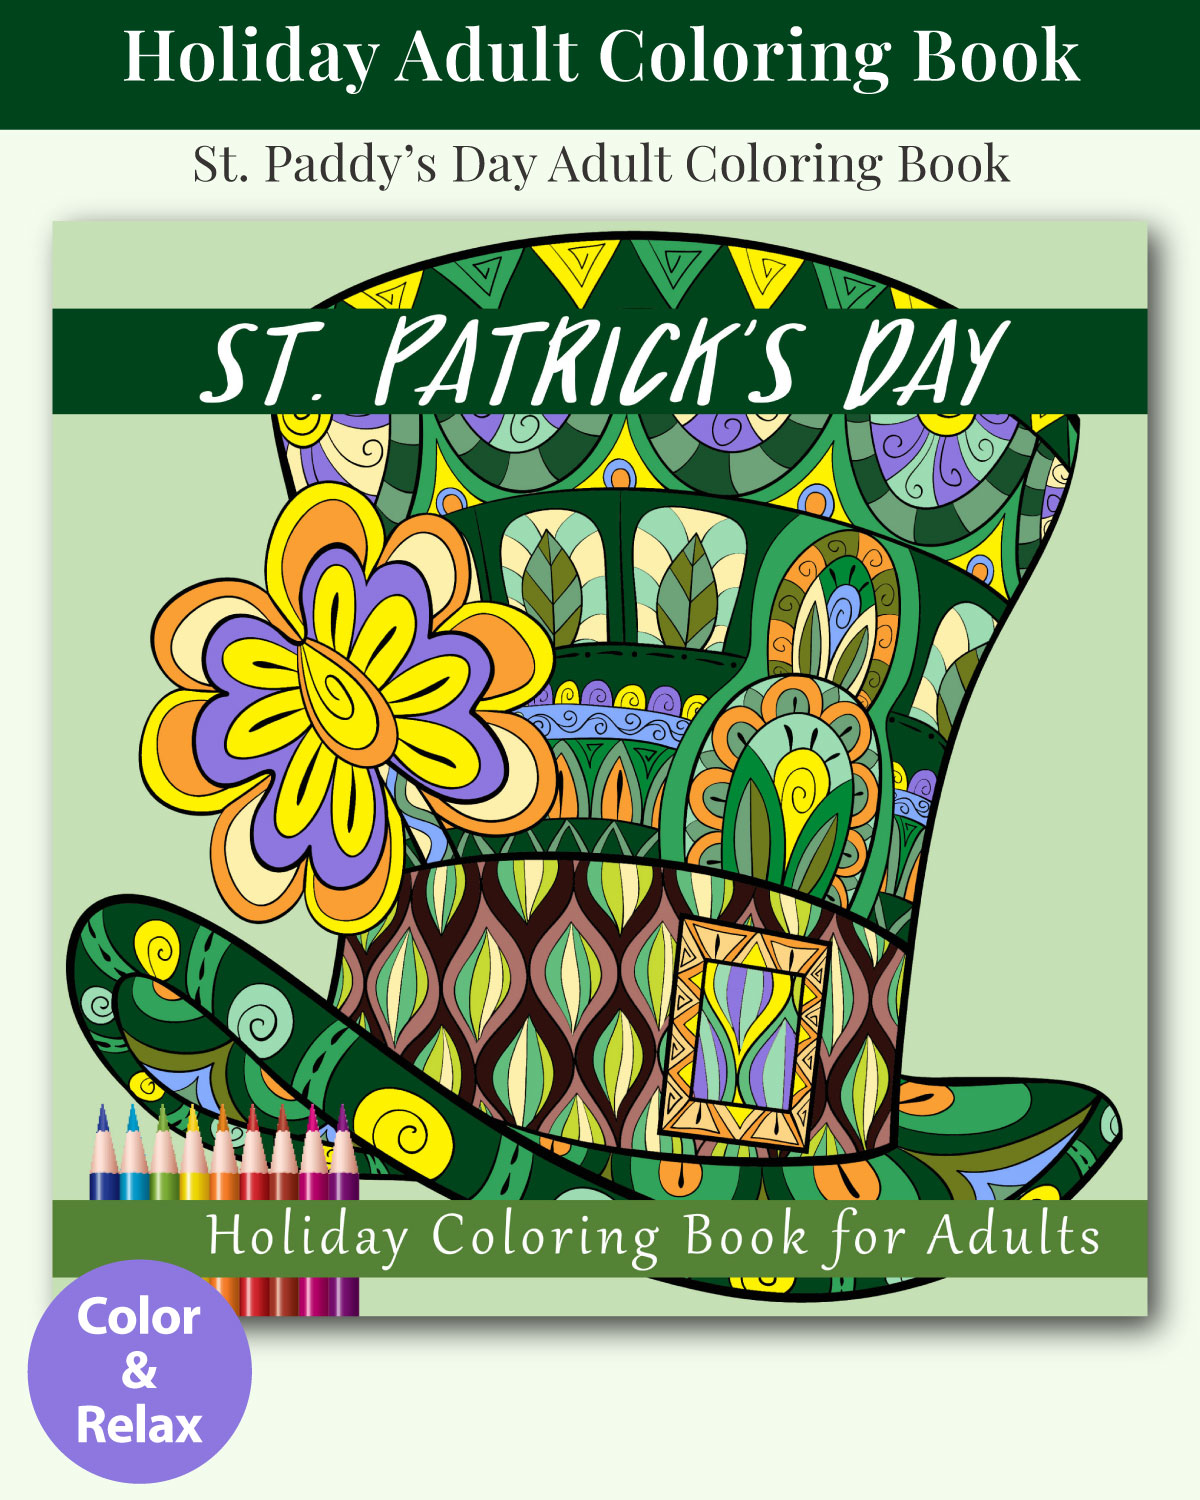 St-Patricks-Day-Adult-Coloring-Book-Cover